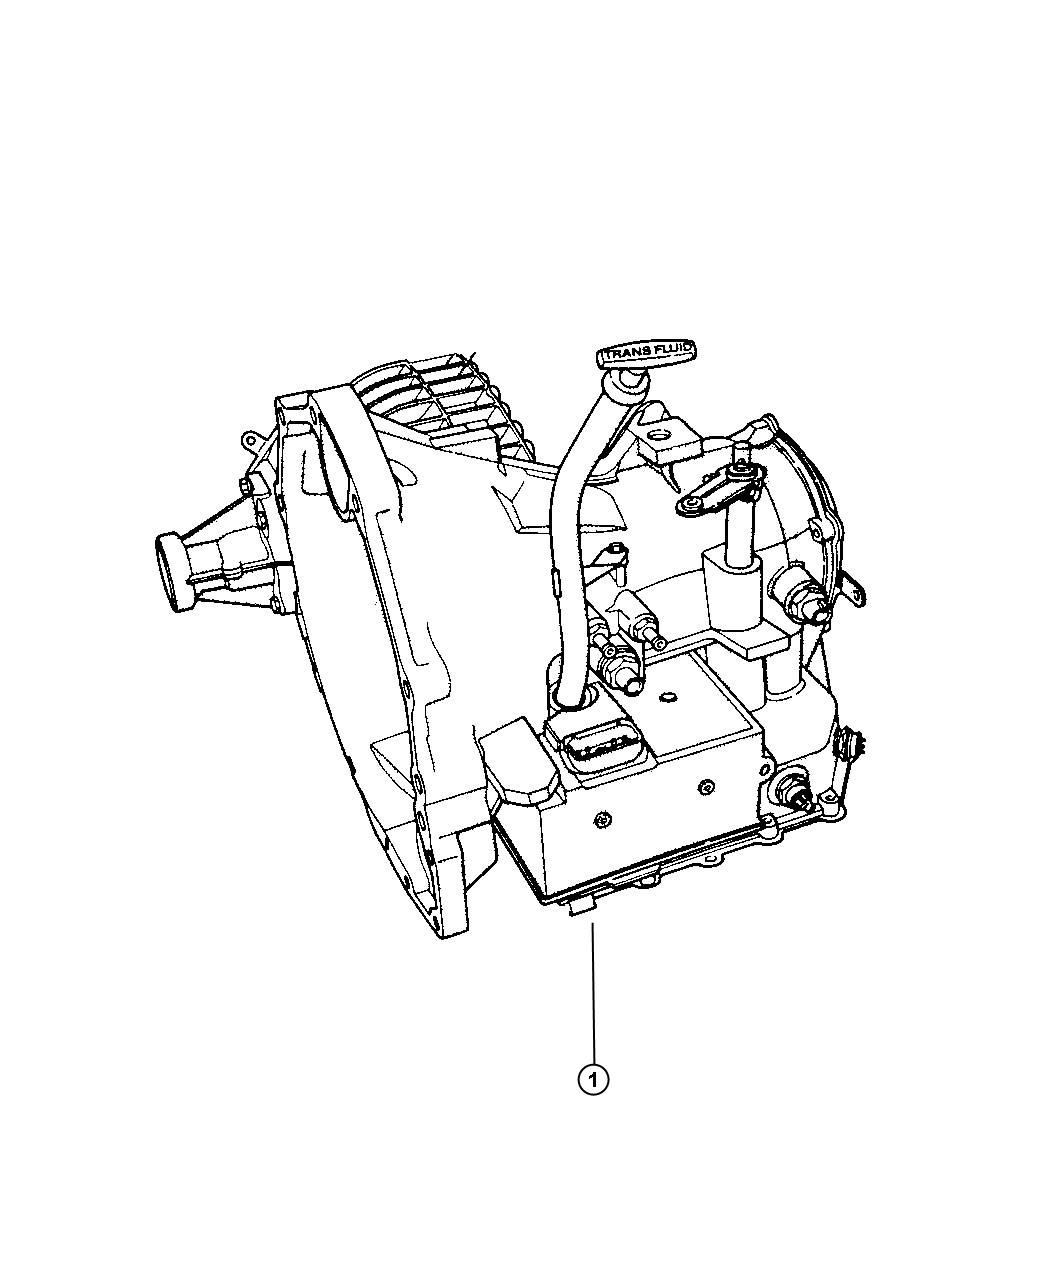 Dodge Stratus Transaxle package. With torque converter